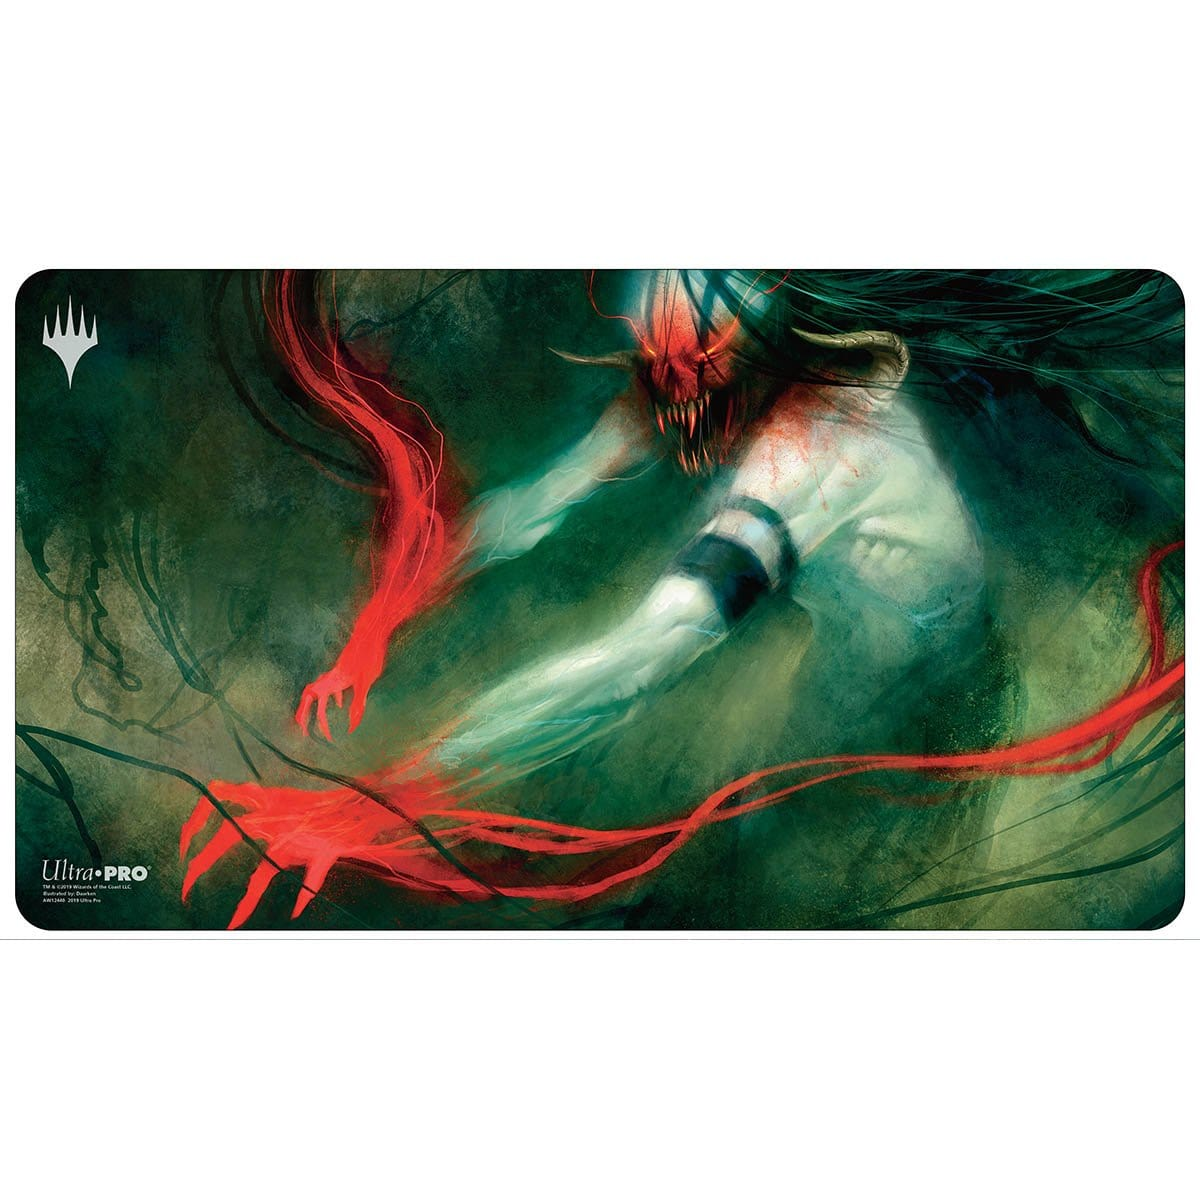 Bloodghast Playmat - Playmat - Original Magic Art - Accessories for Magic the Gathering and other card games